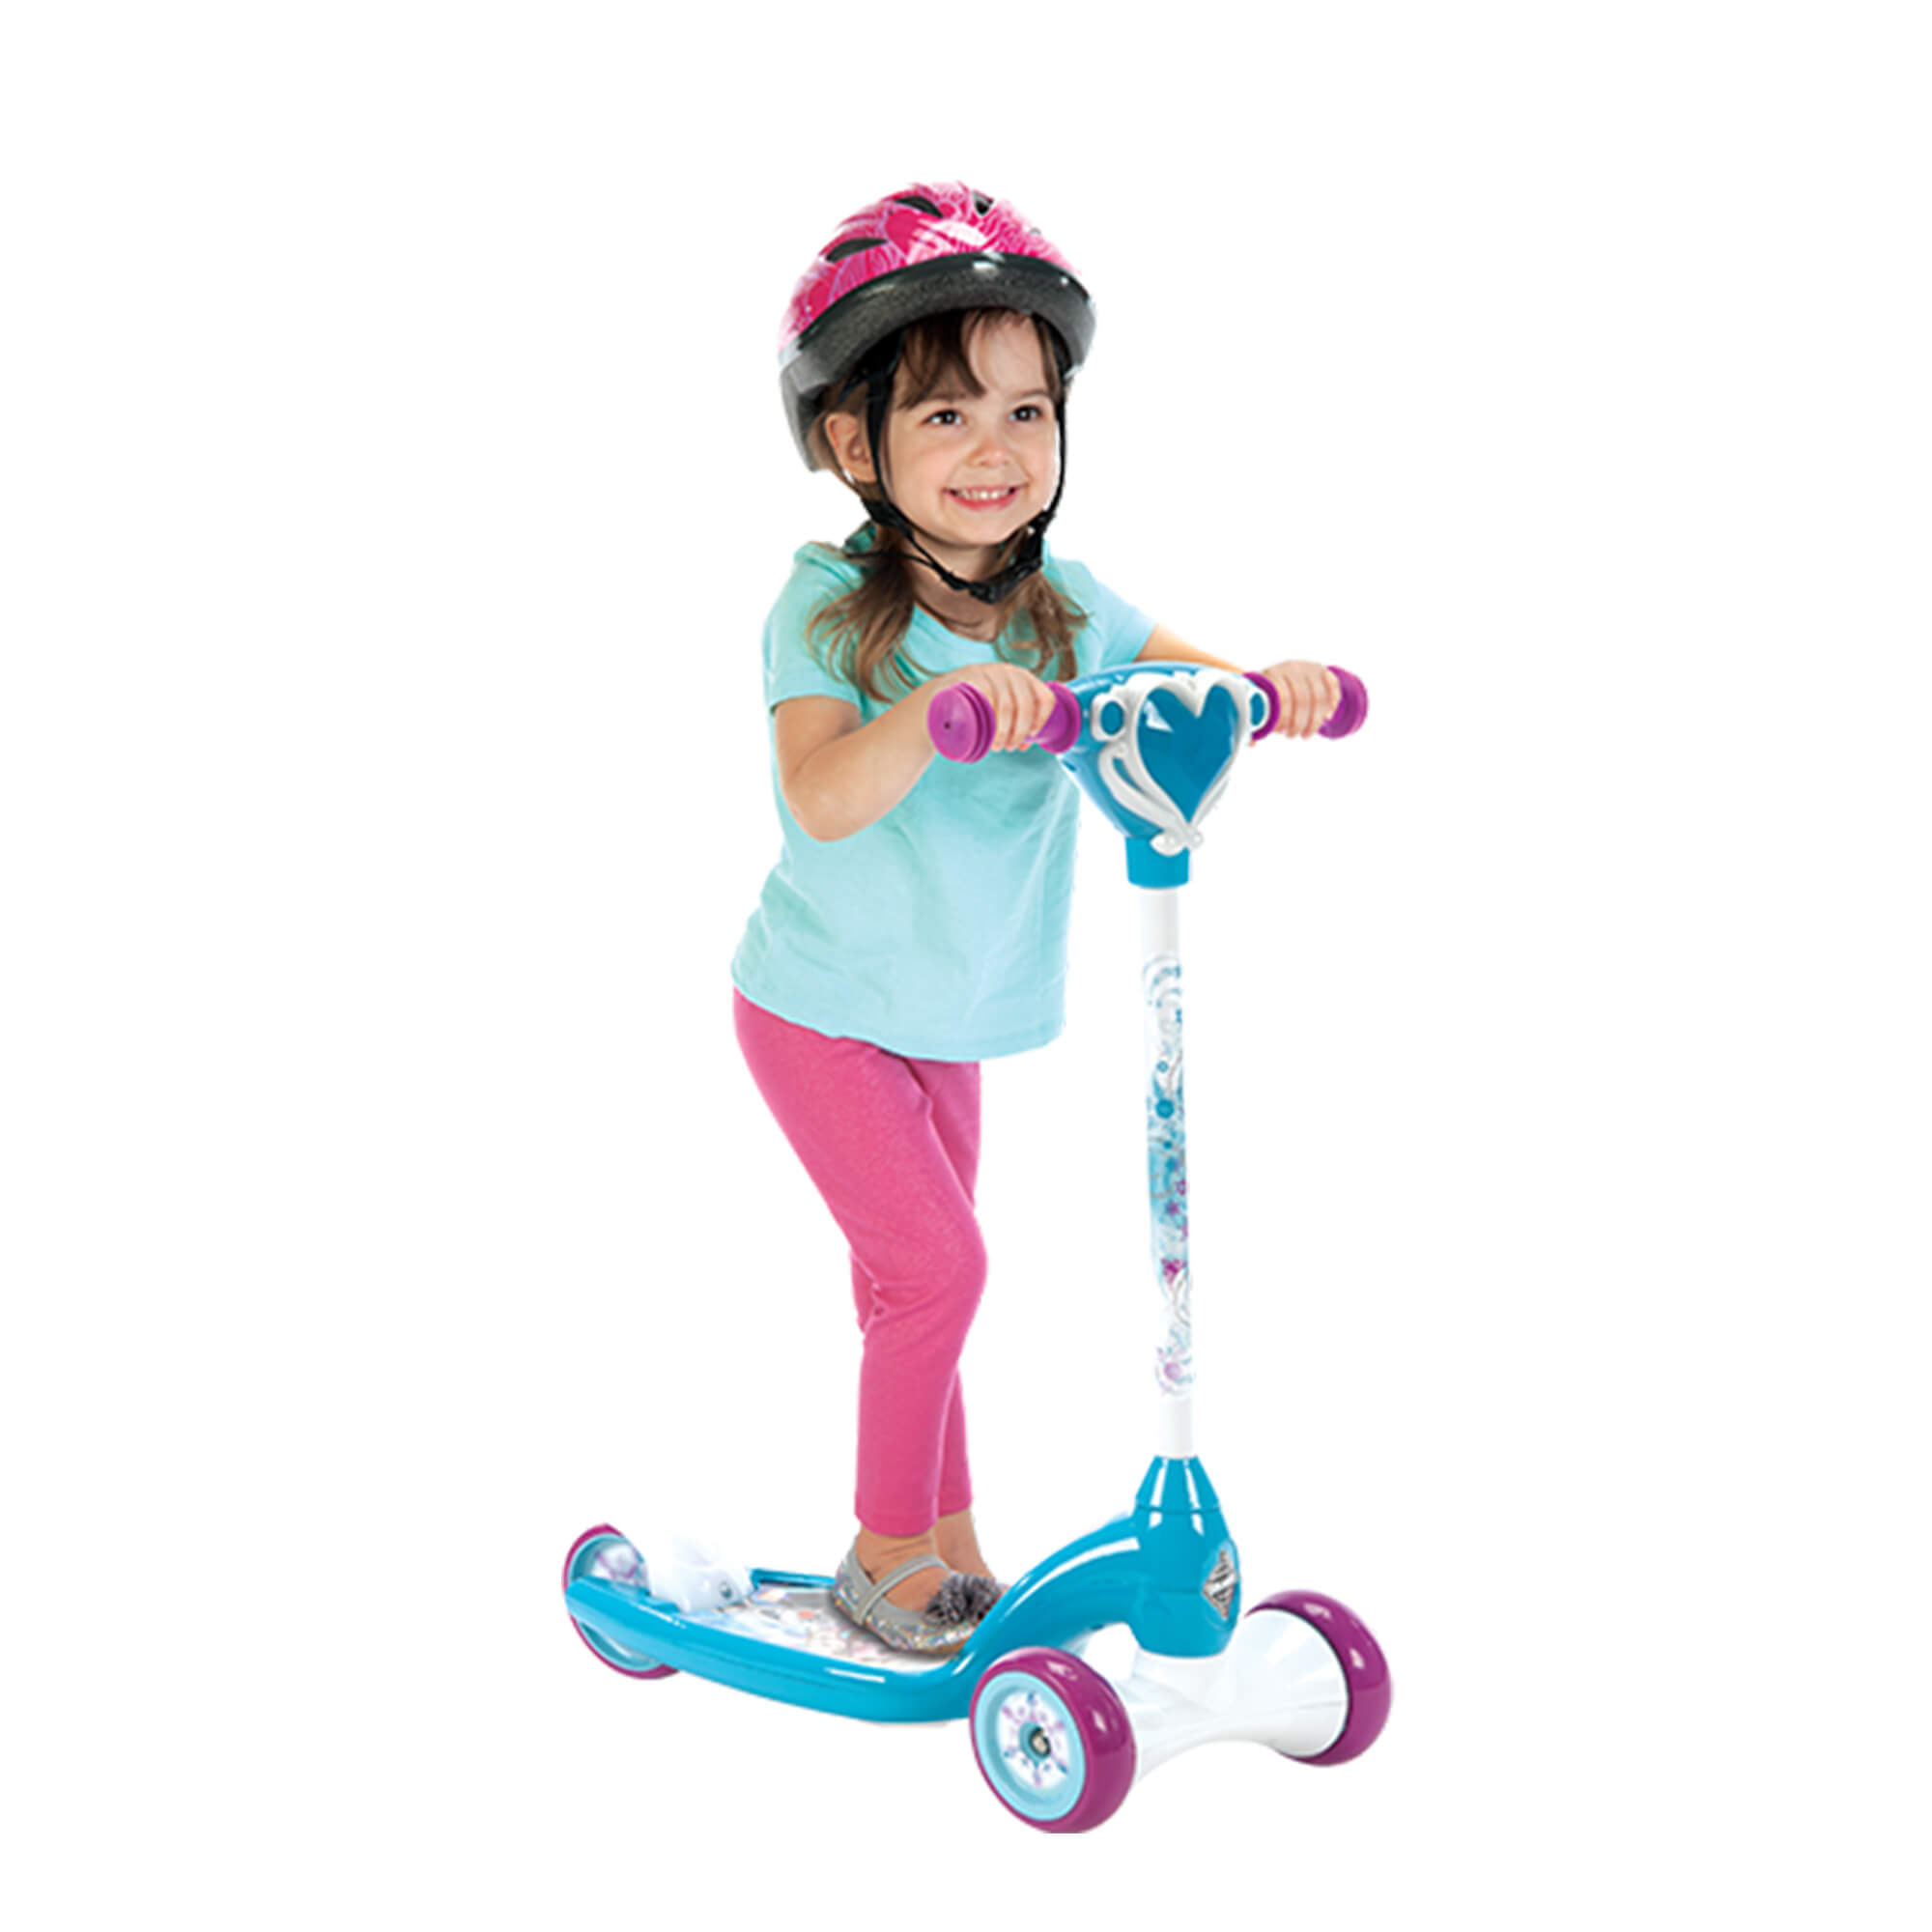 Disney Frozen Preschool Girls' Scooter with Lights and Sounds, by Huffy by Huffy